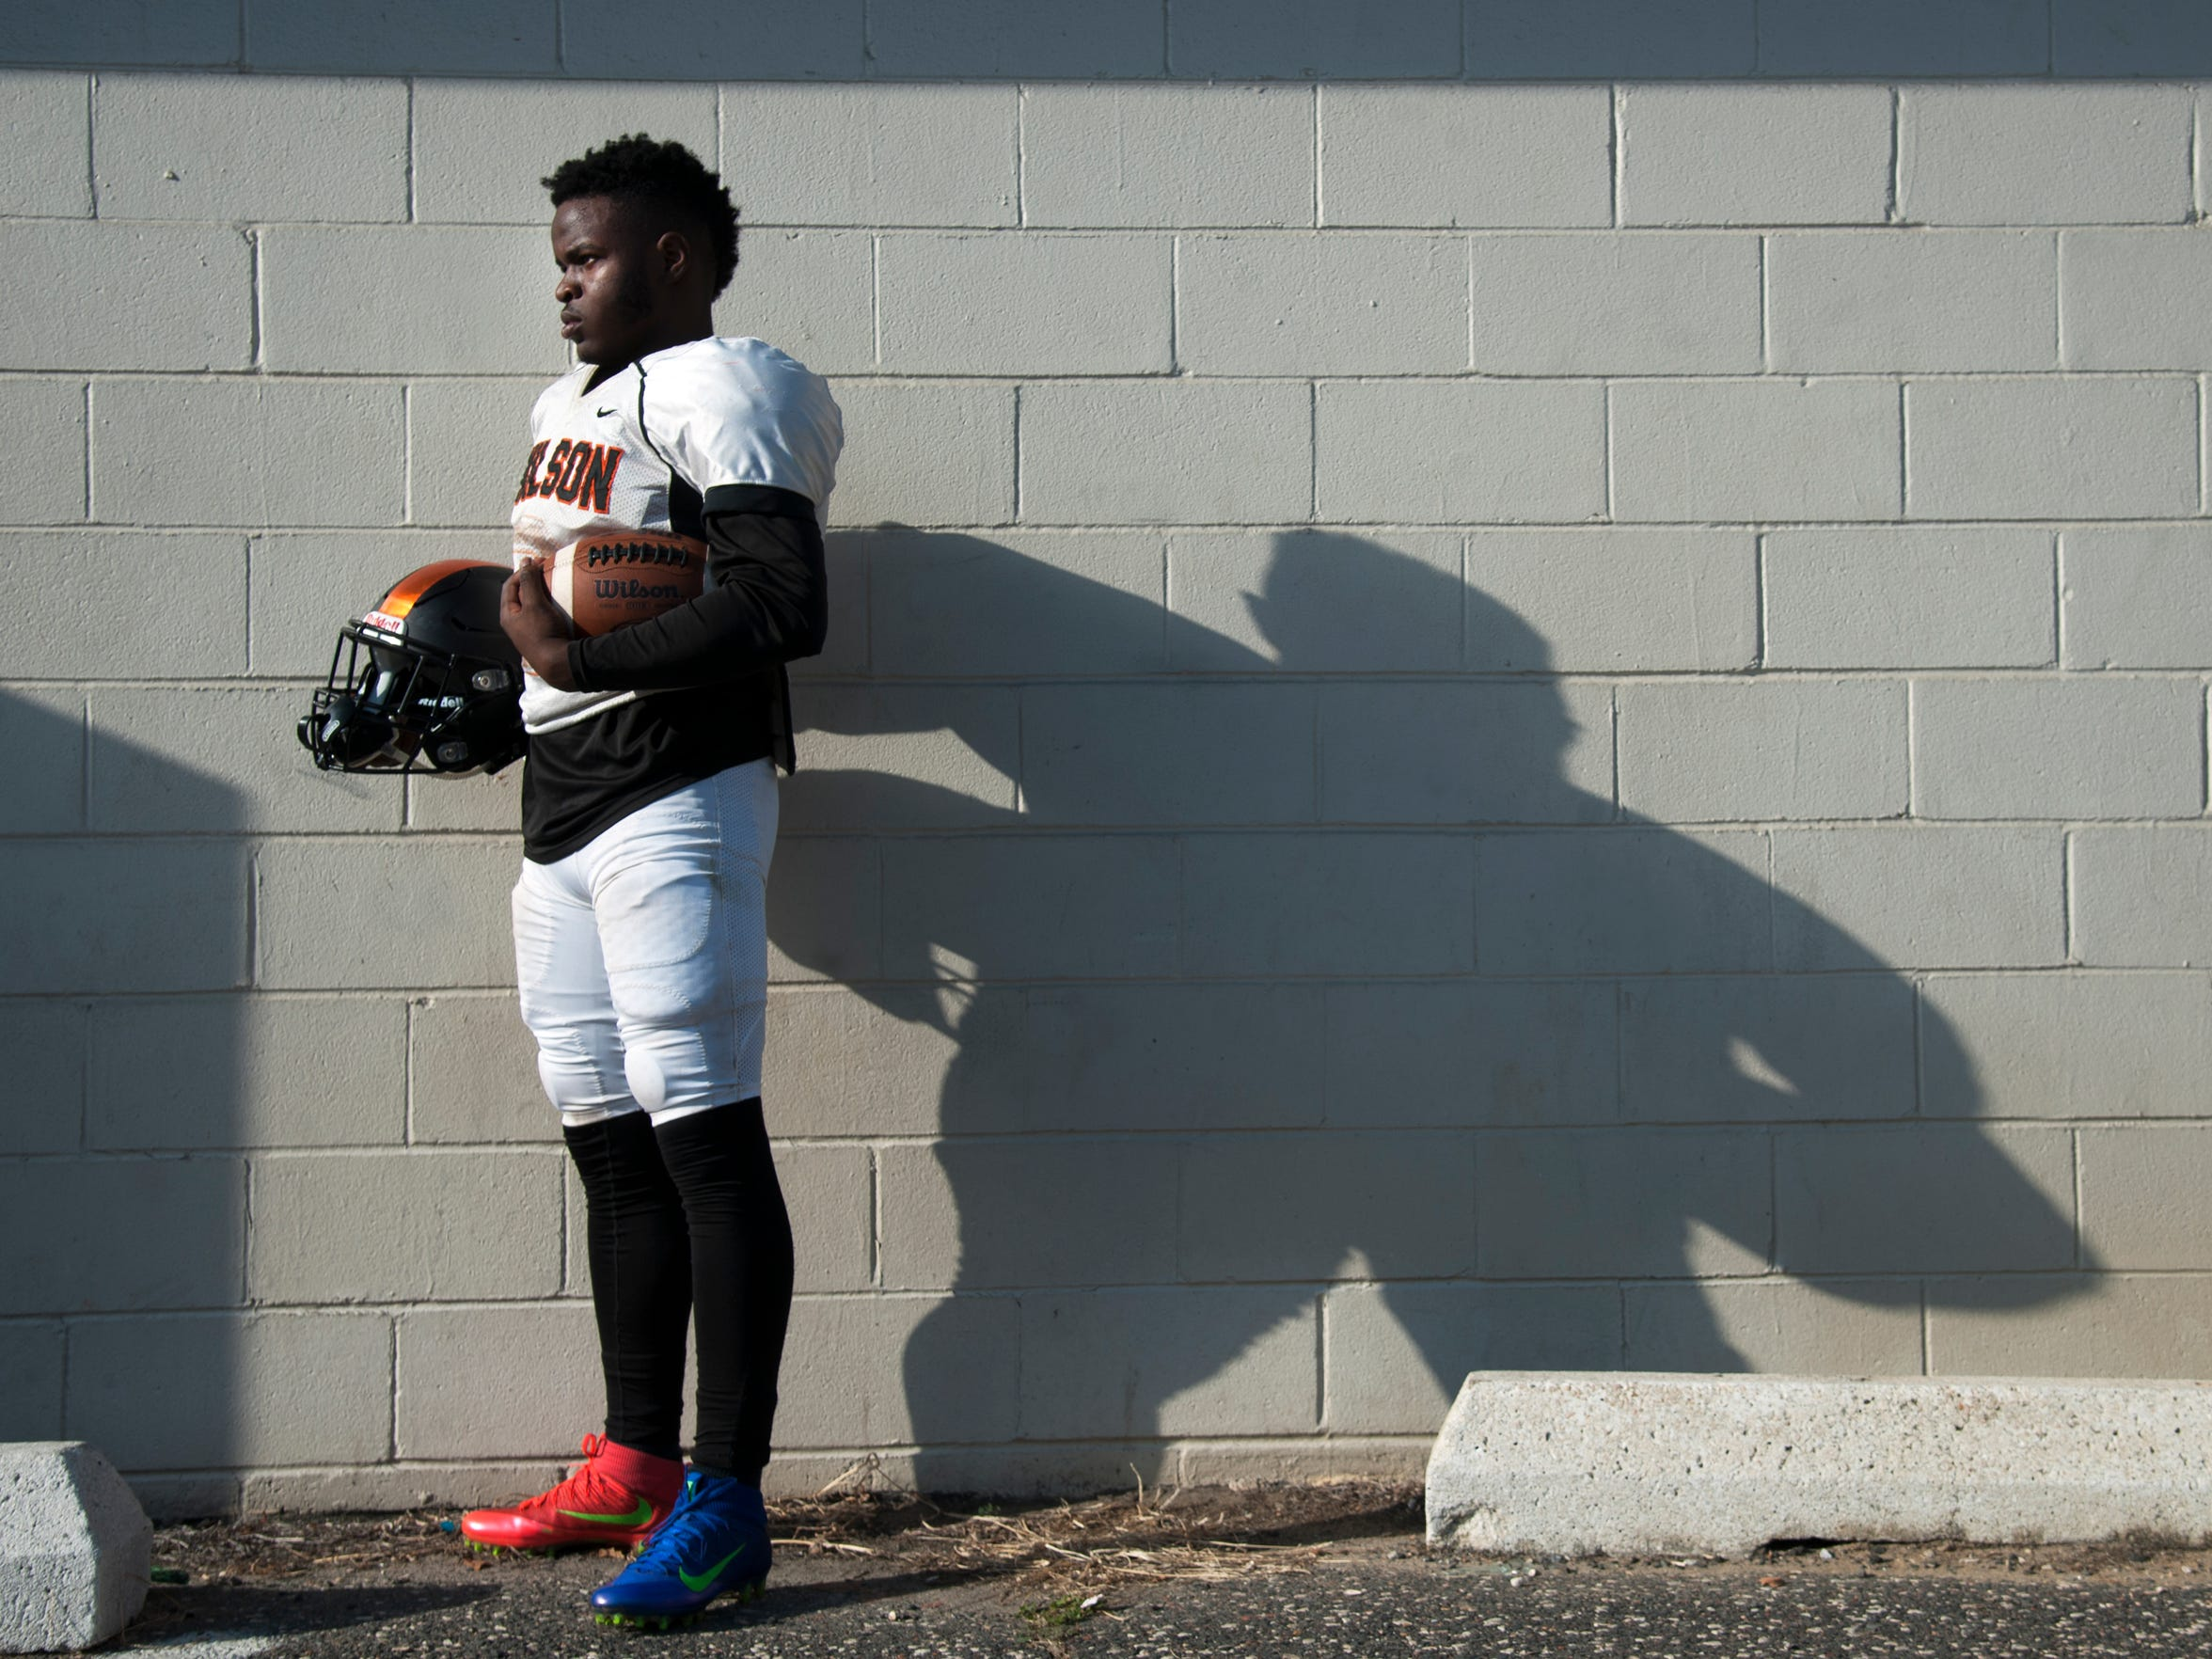 Woodrow Wilson senior running back, wide receiver, cornerback Hydir Moore stands for a portrait at Woodrow Wilson High School.  10.03.17